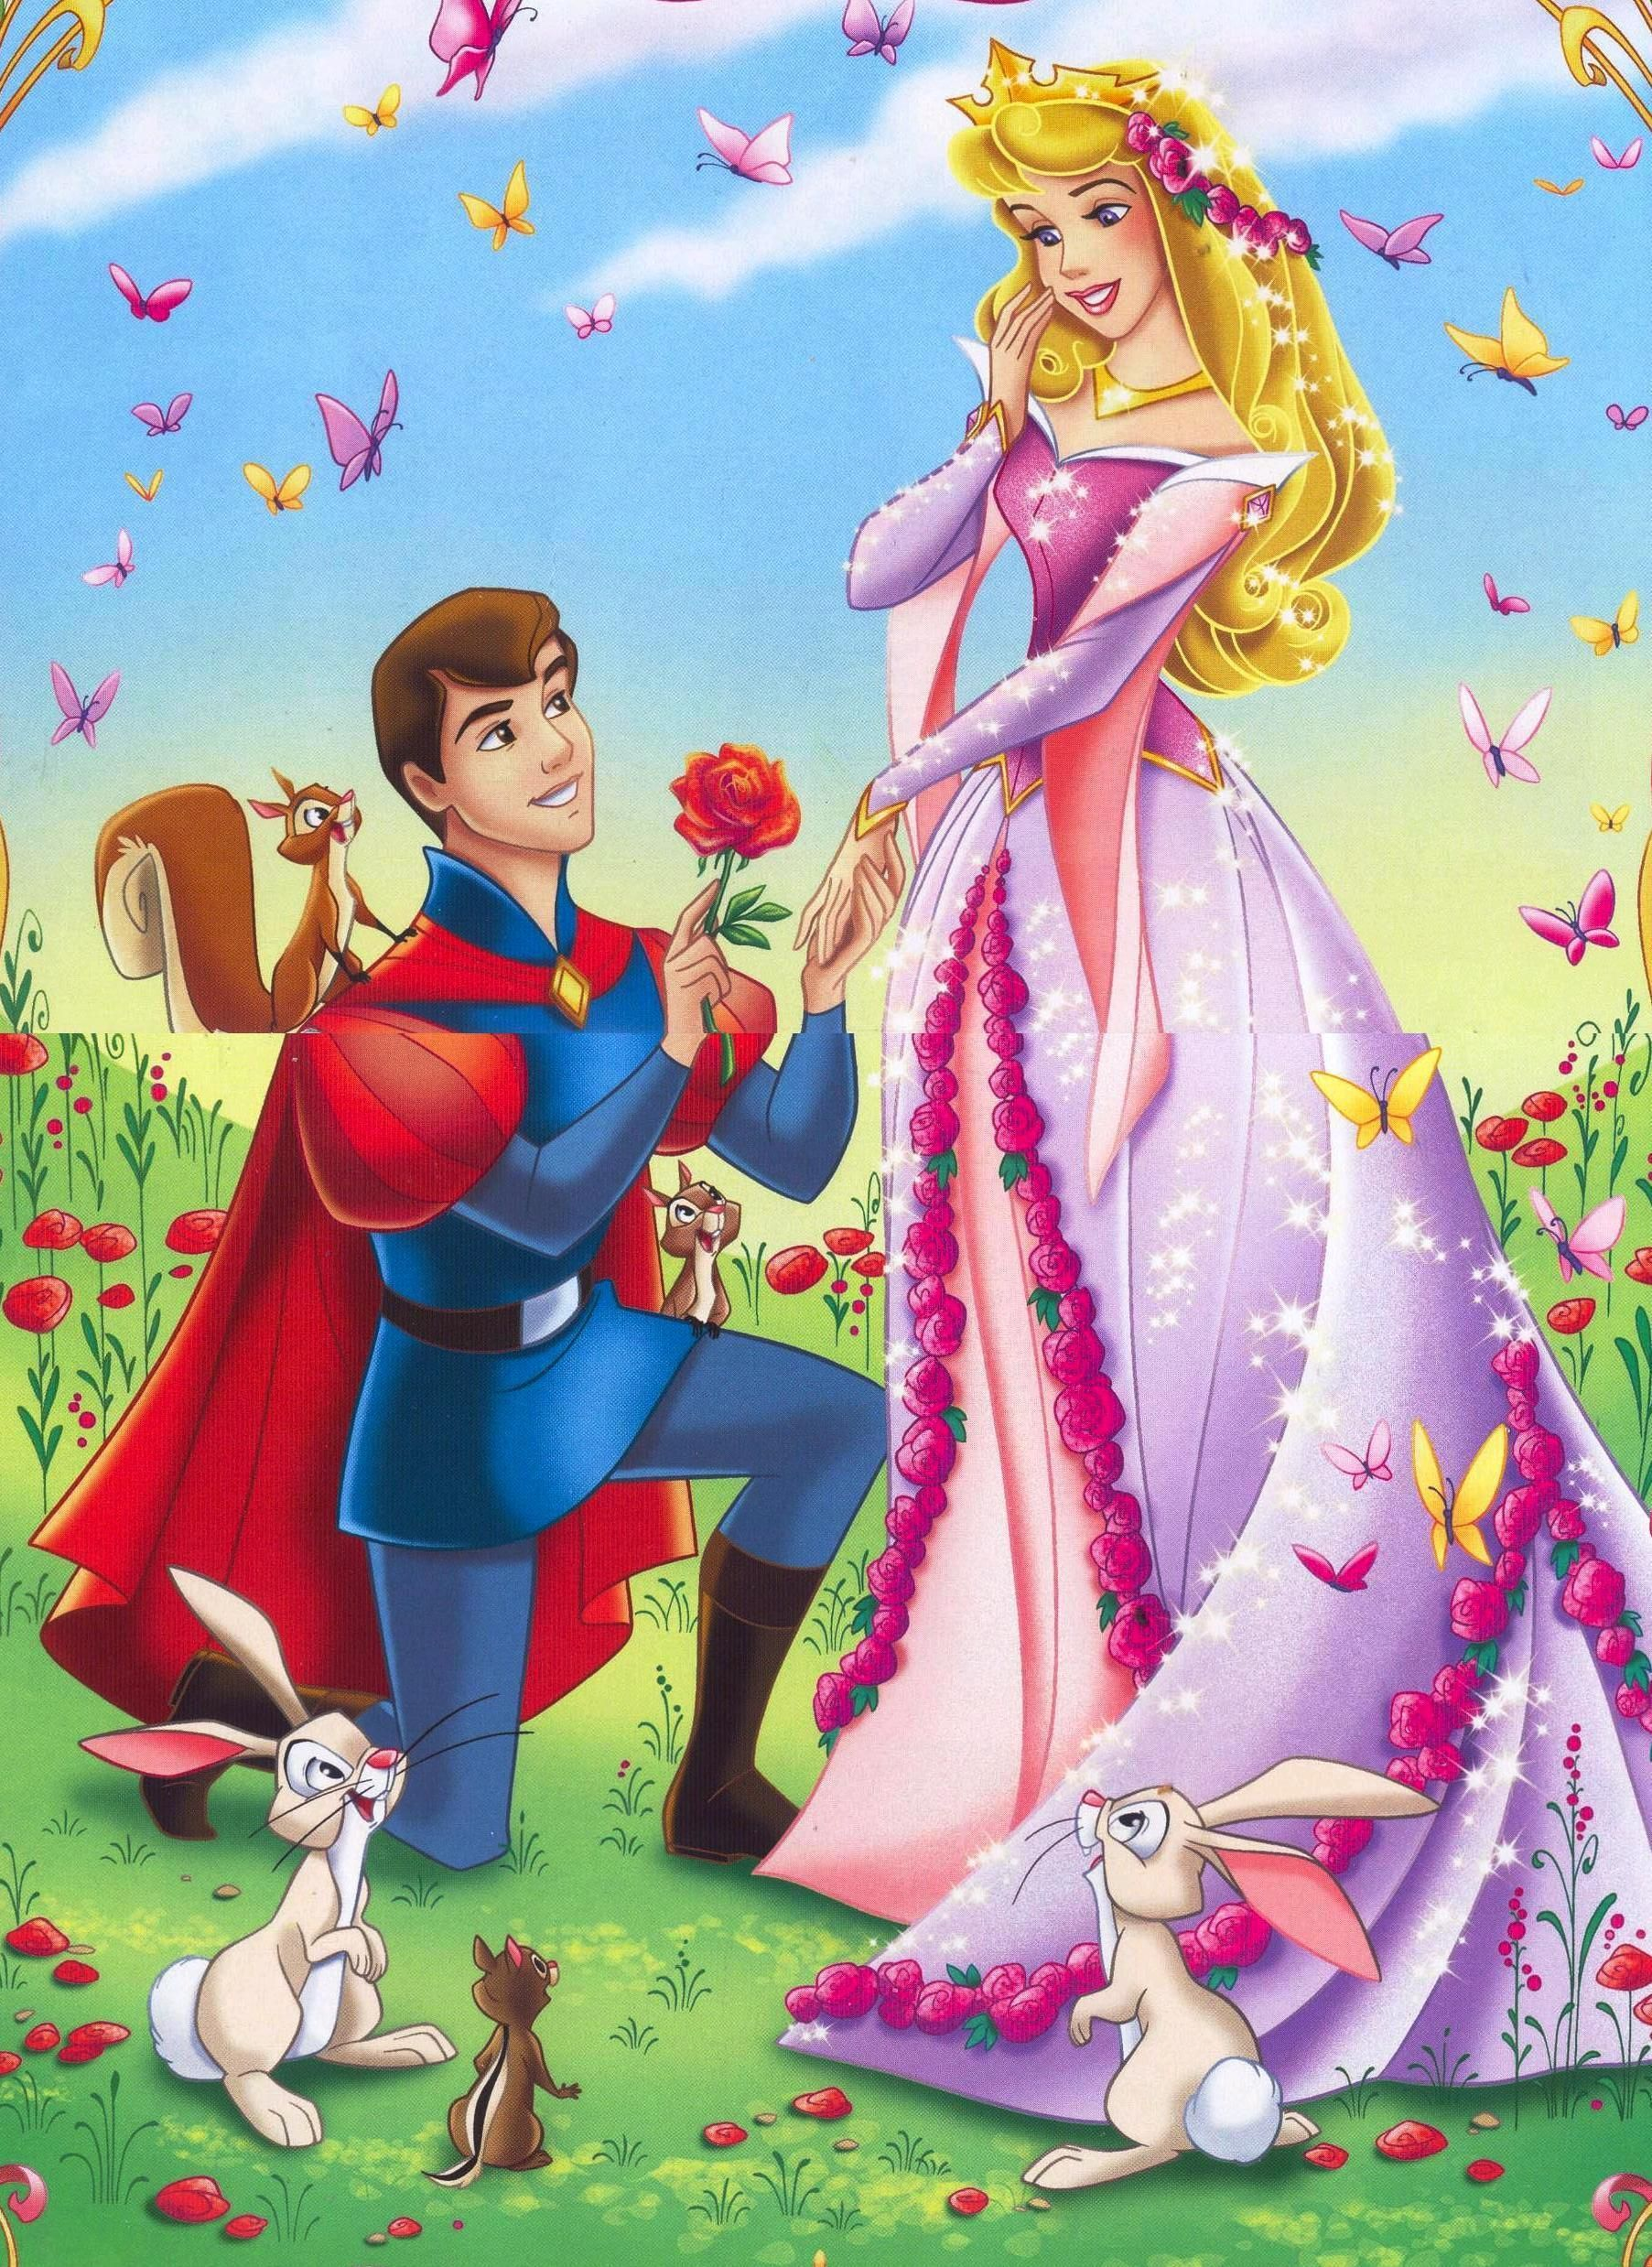 Princess-Aurora-and-Prince-Philip-disney-couples-6340157-1805-2477.jpg (1805×2477)